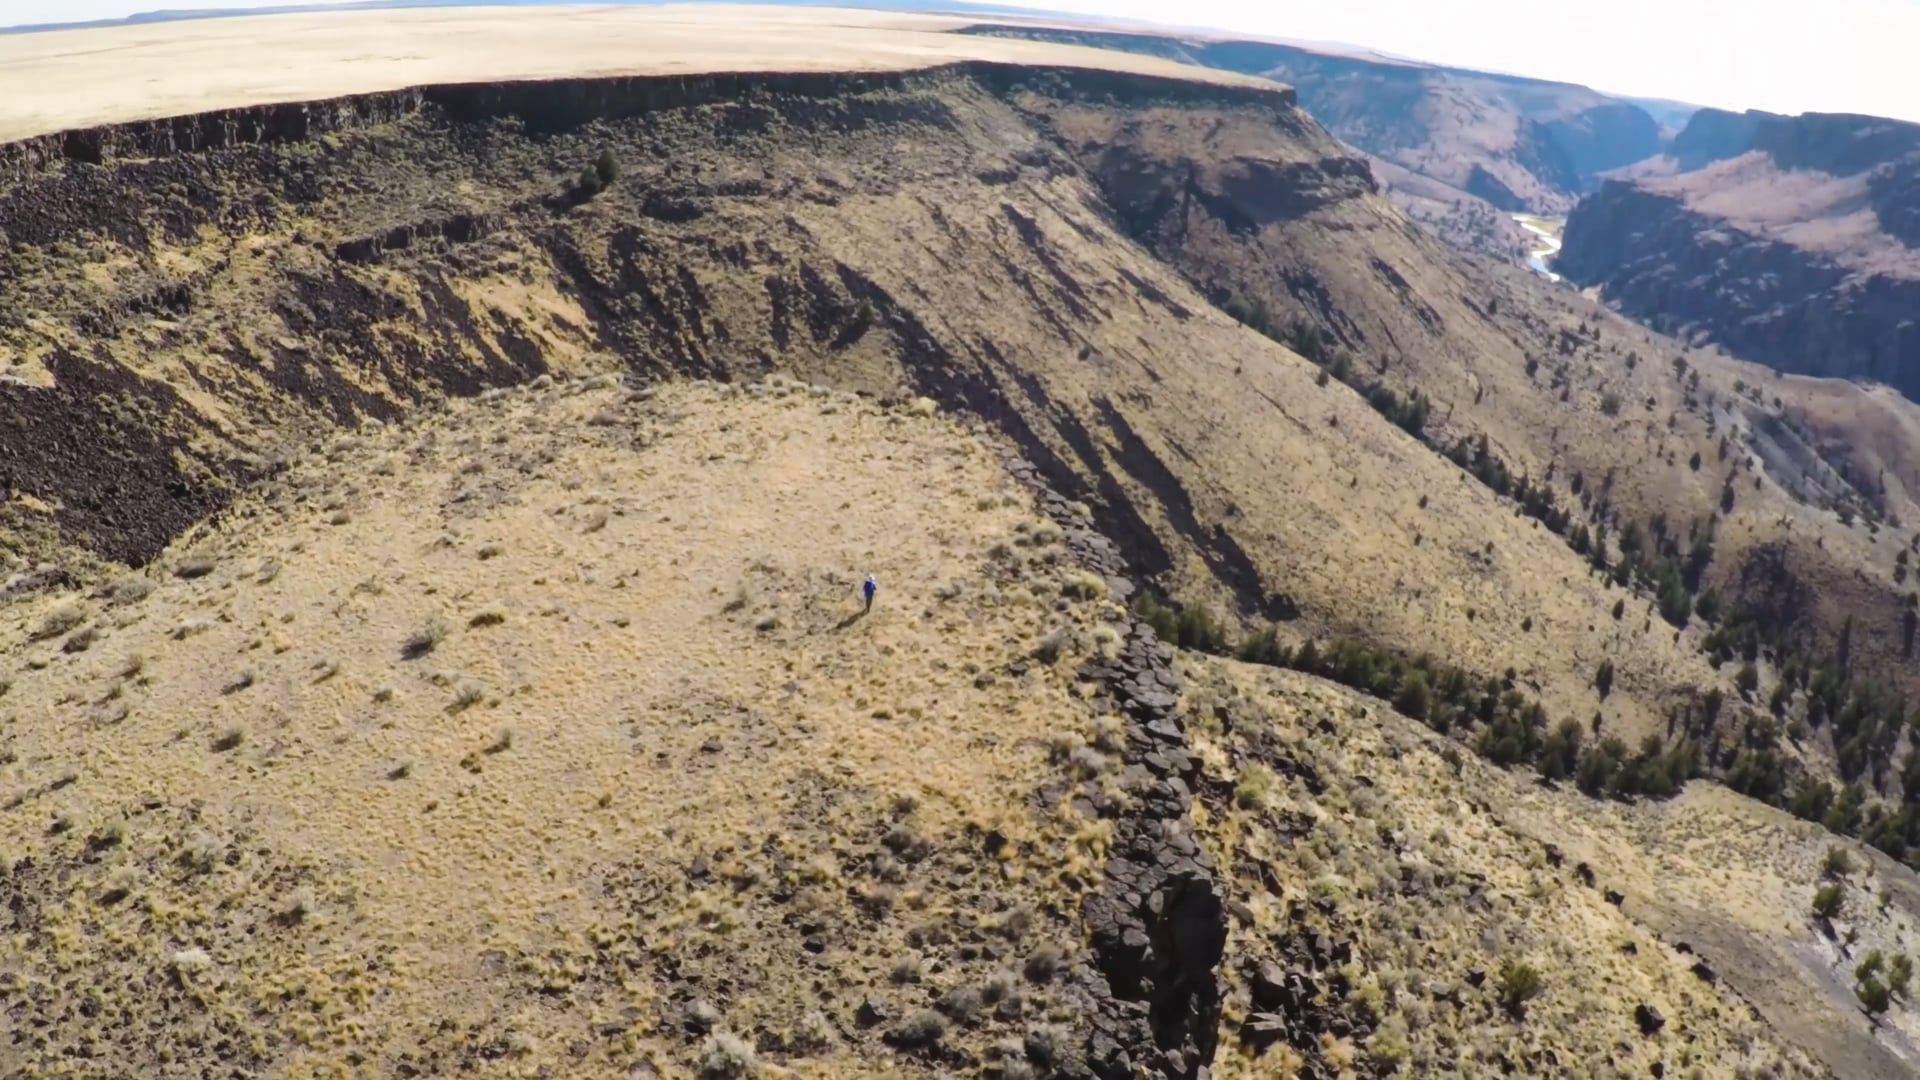 Protecting the Owyhee Canyonlands